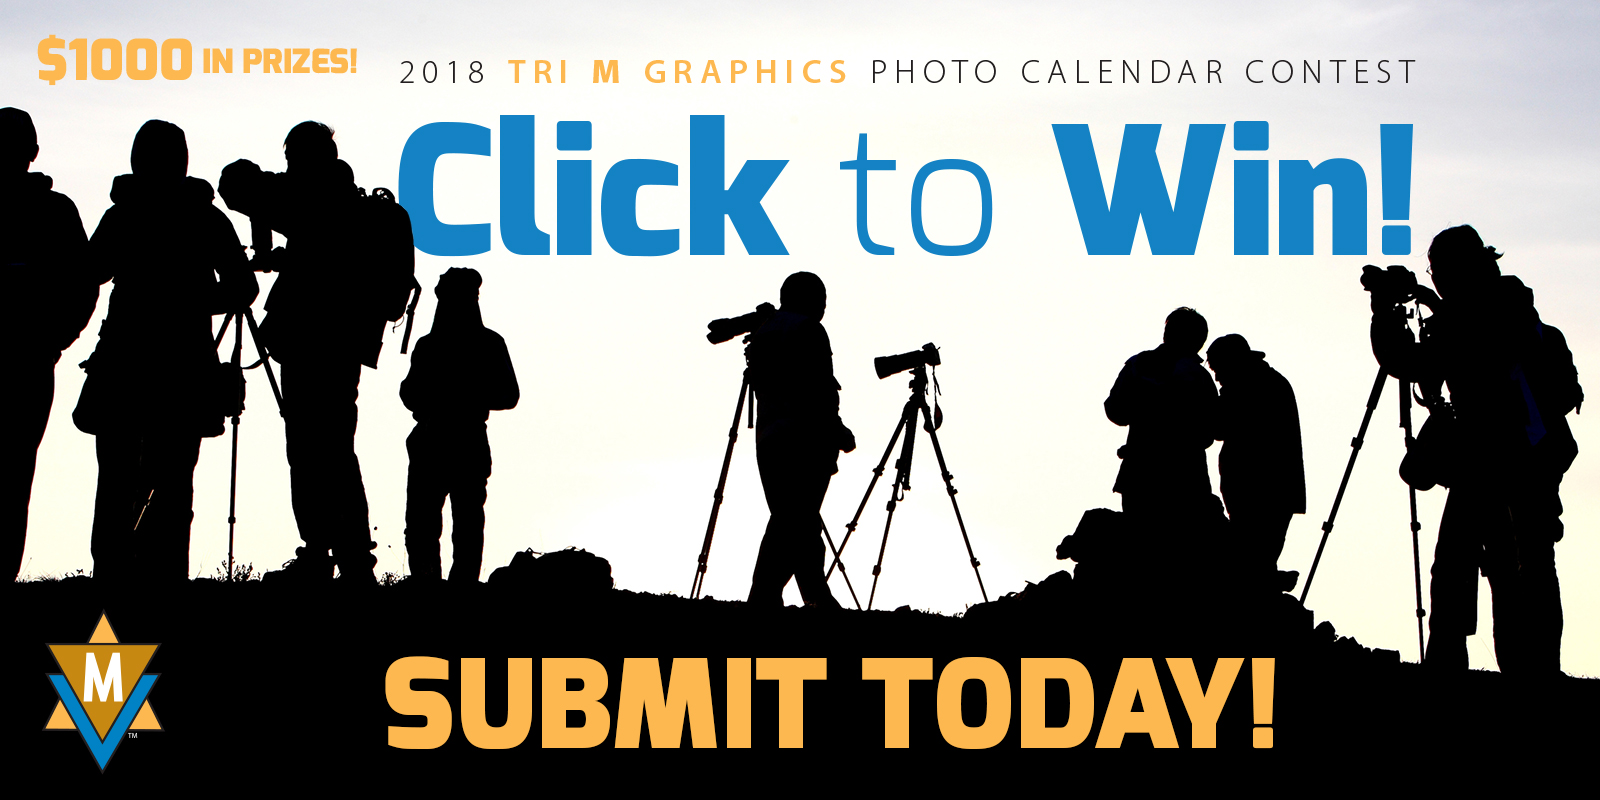 Tri M Graphics 2018 Photo Calendar Contest